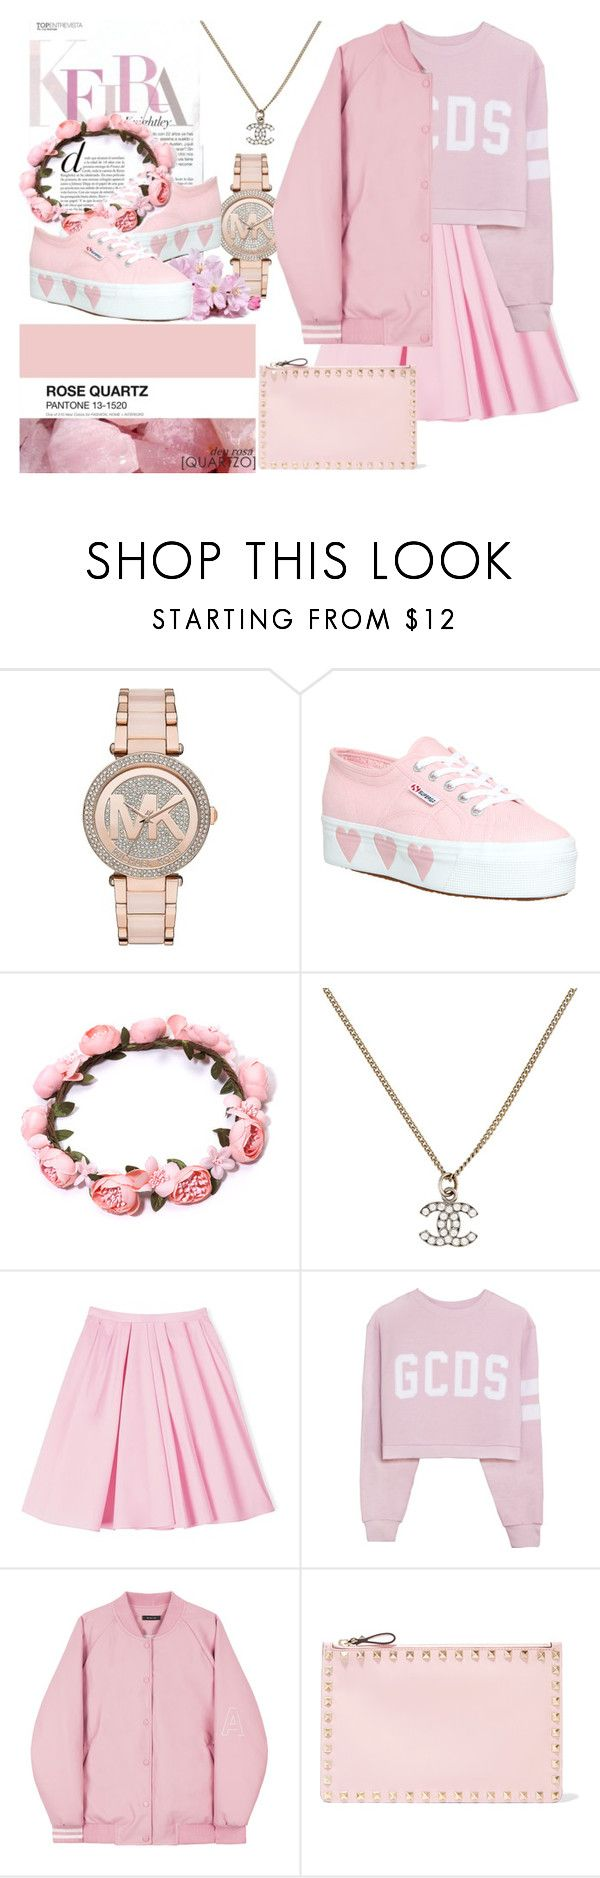 Untitled #194 by denisa-marcu on Polyvore featuring Carven, Superga, Valentino, Chanel, Michael Kors, women's clothing, women's fashion, women, female and woman